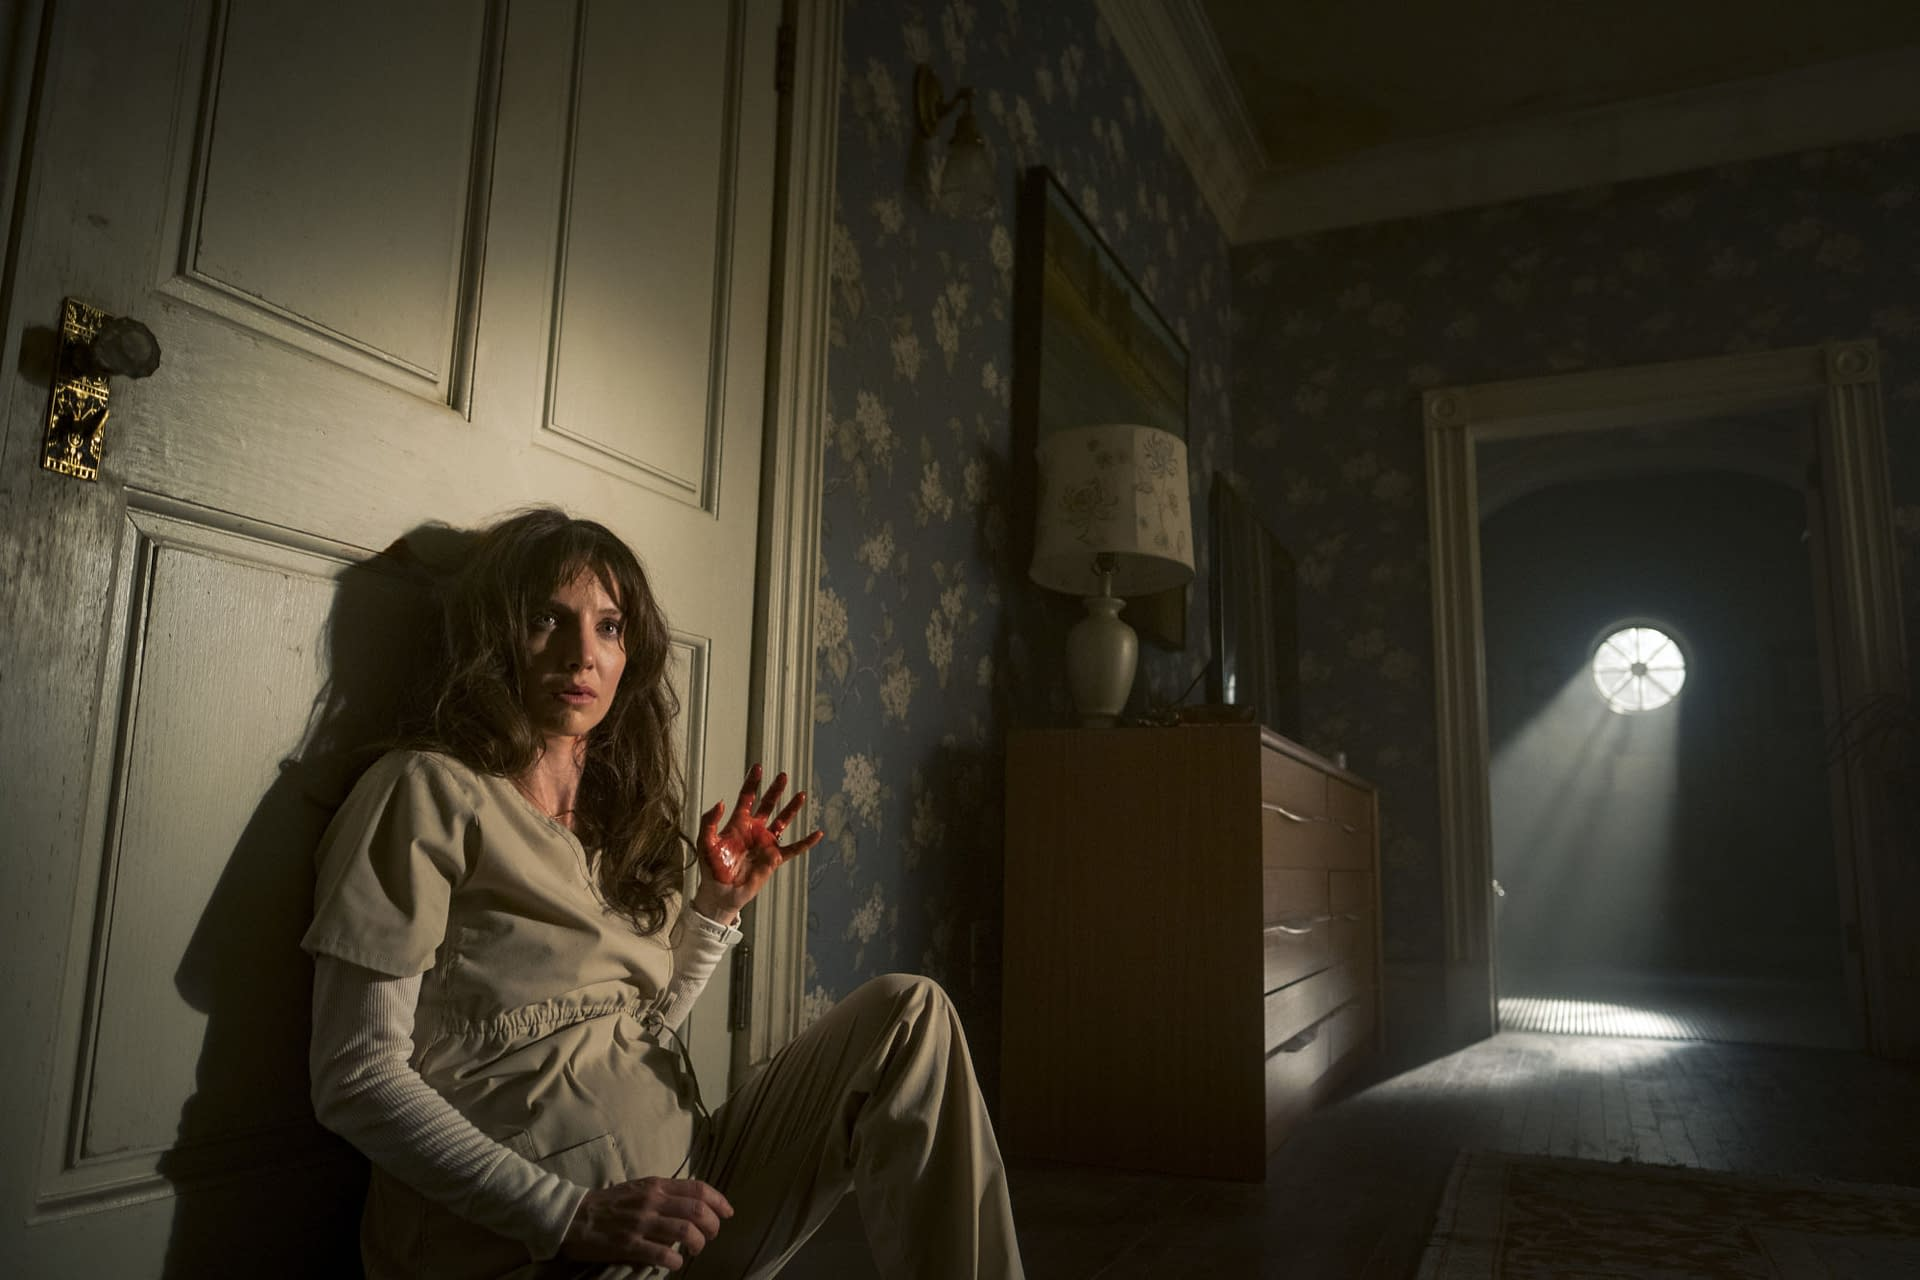 Malignant: A Flood Of Images From James Wan's New Horror Film Emerge